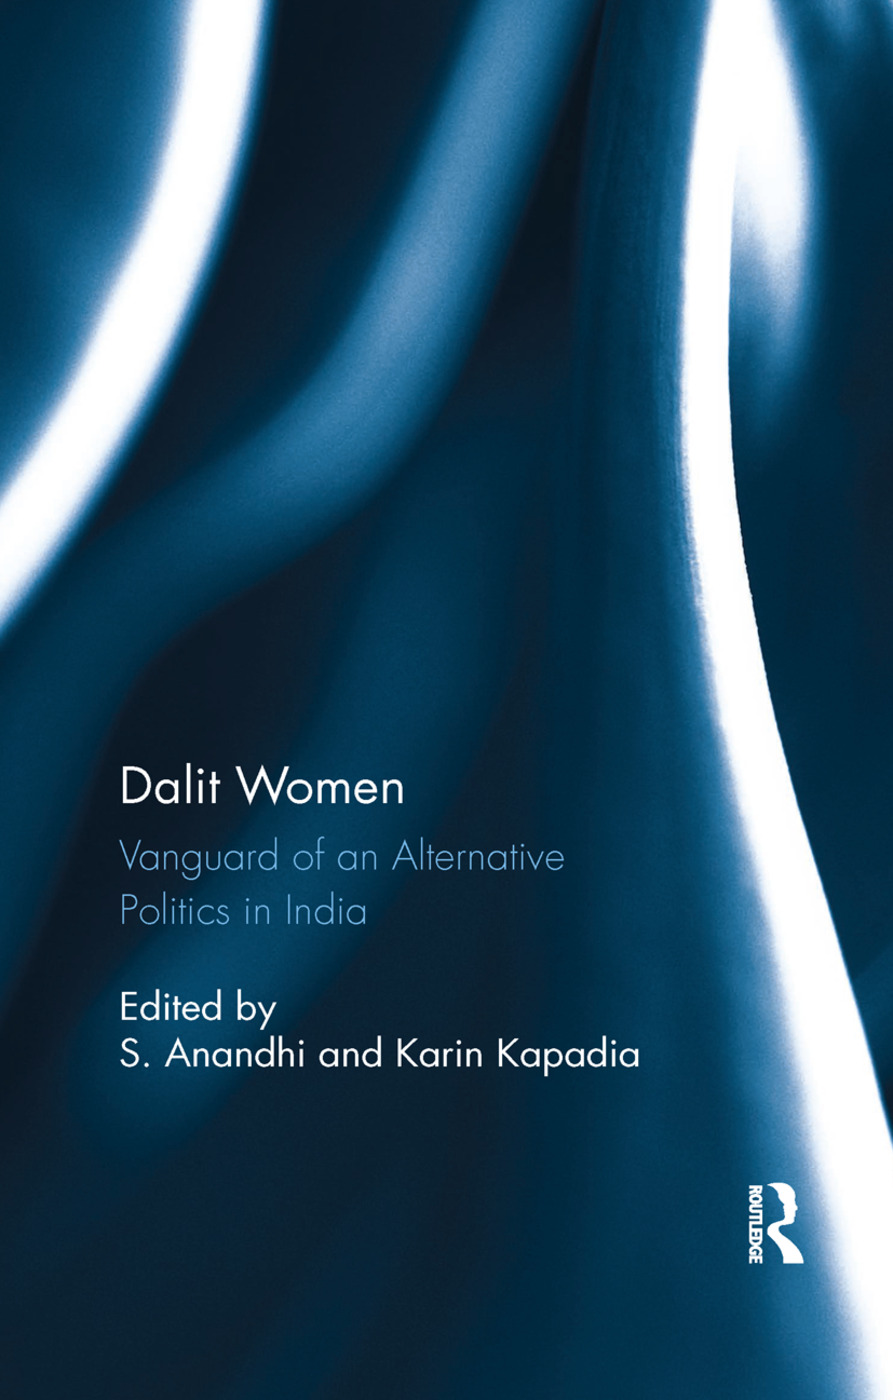 Dalit Women: Vanguard of an Alternative Politics in India book cover